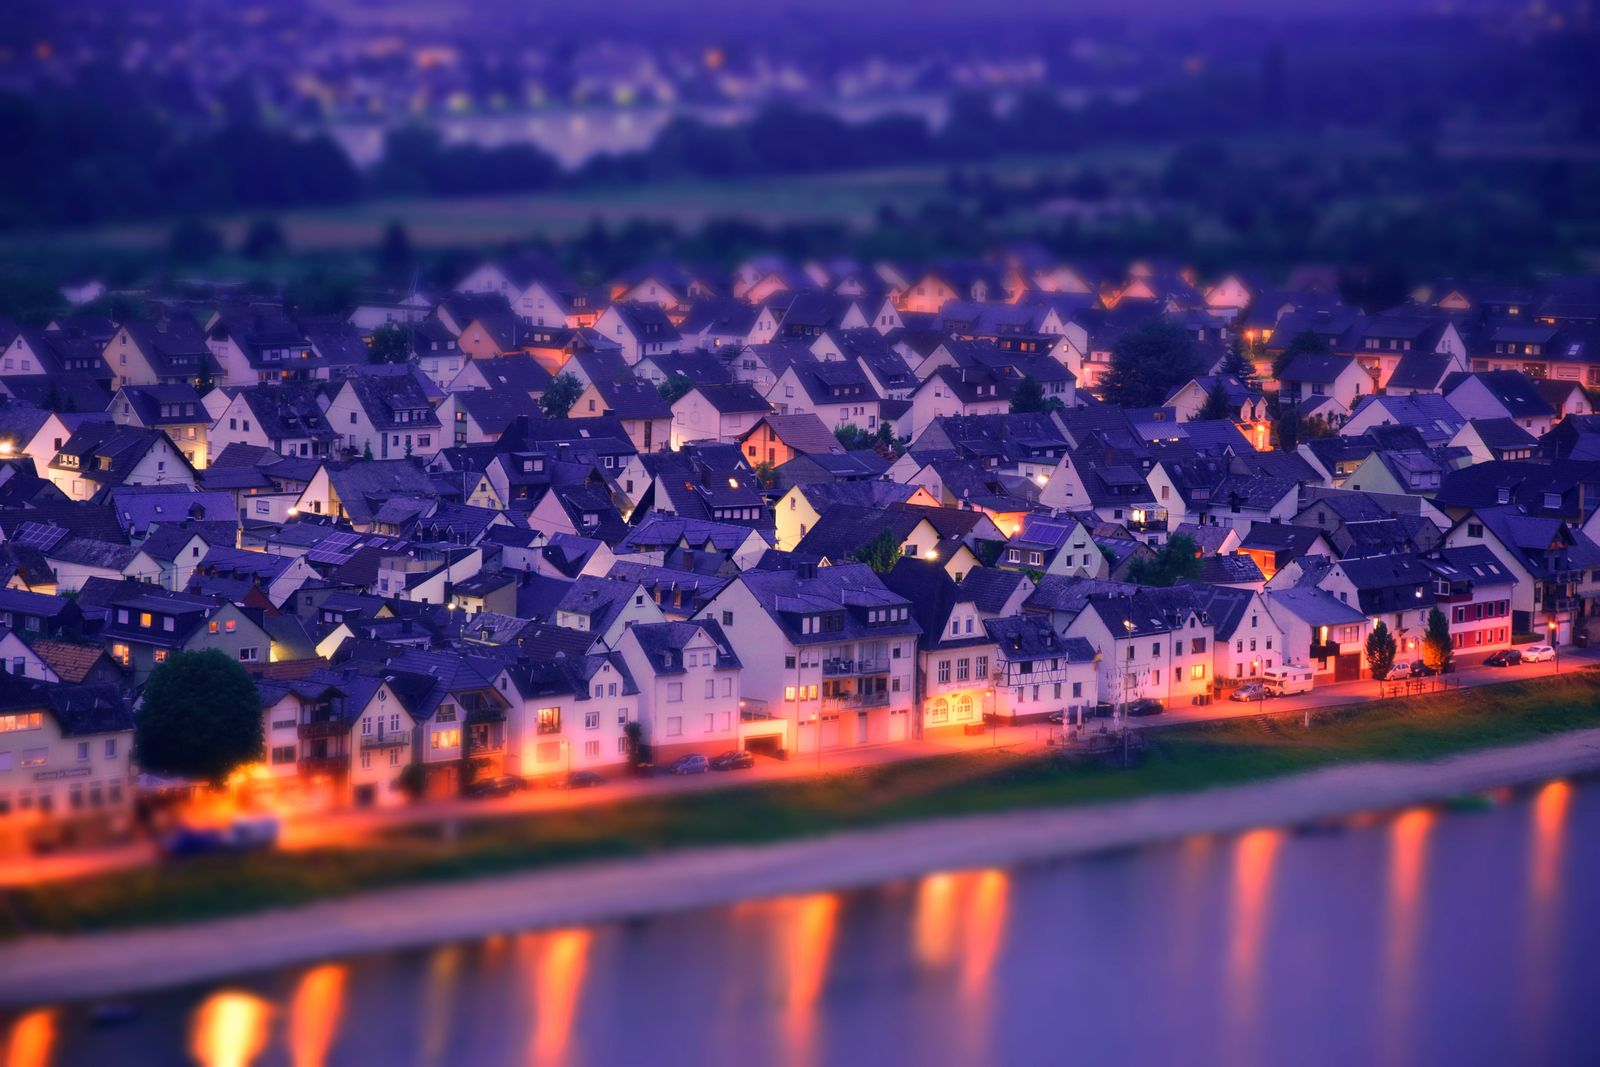 Aerial View Of Illuminated Houses In Town